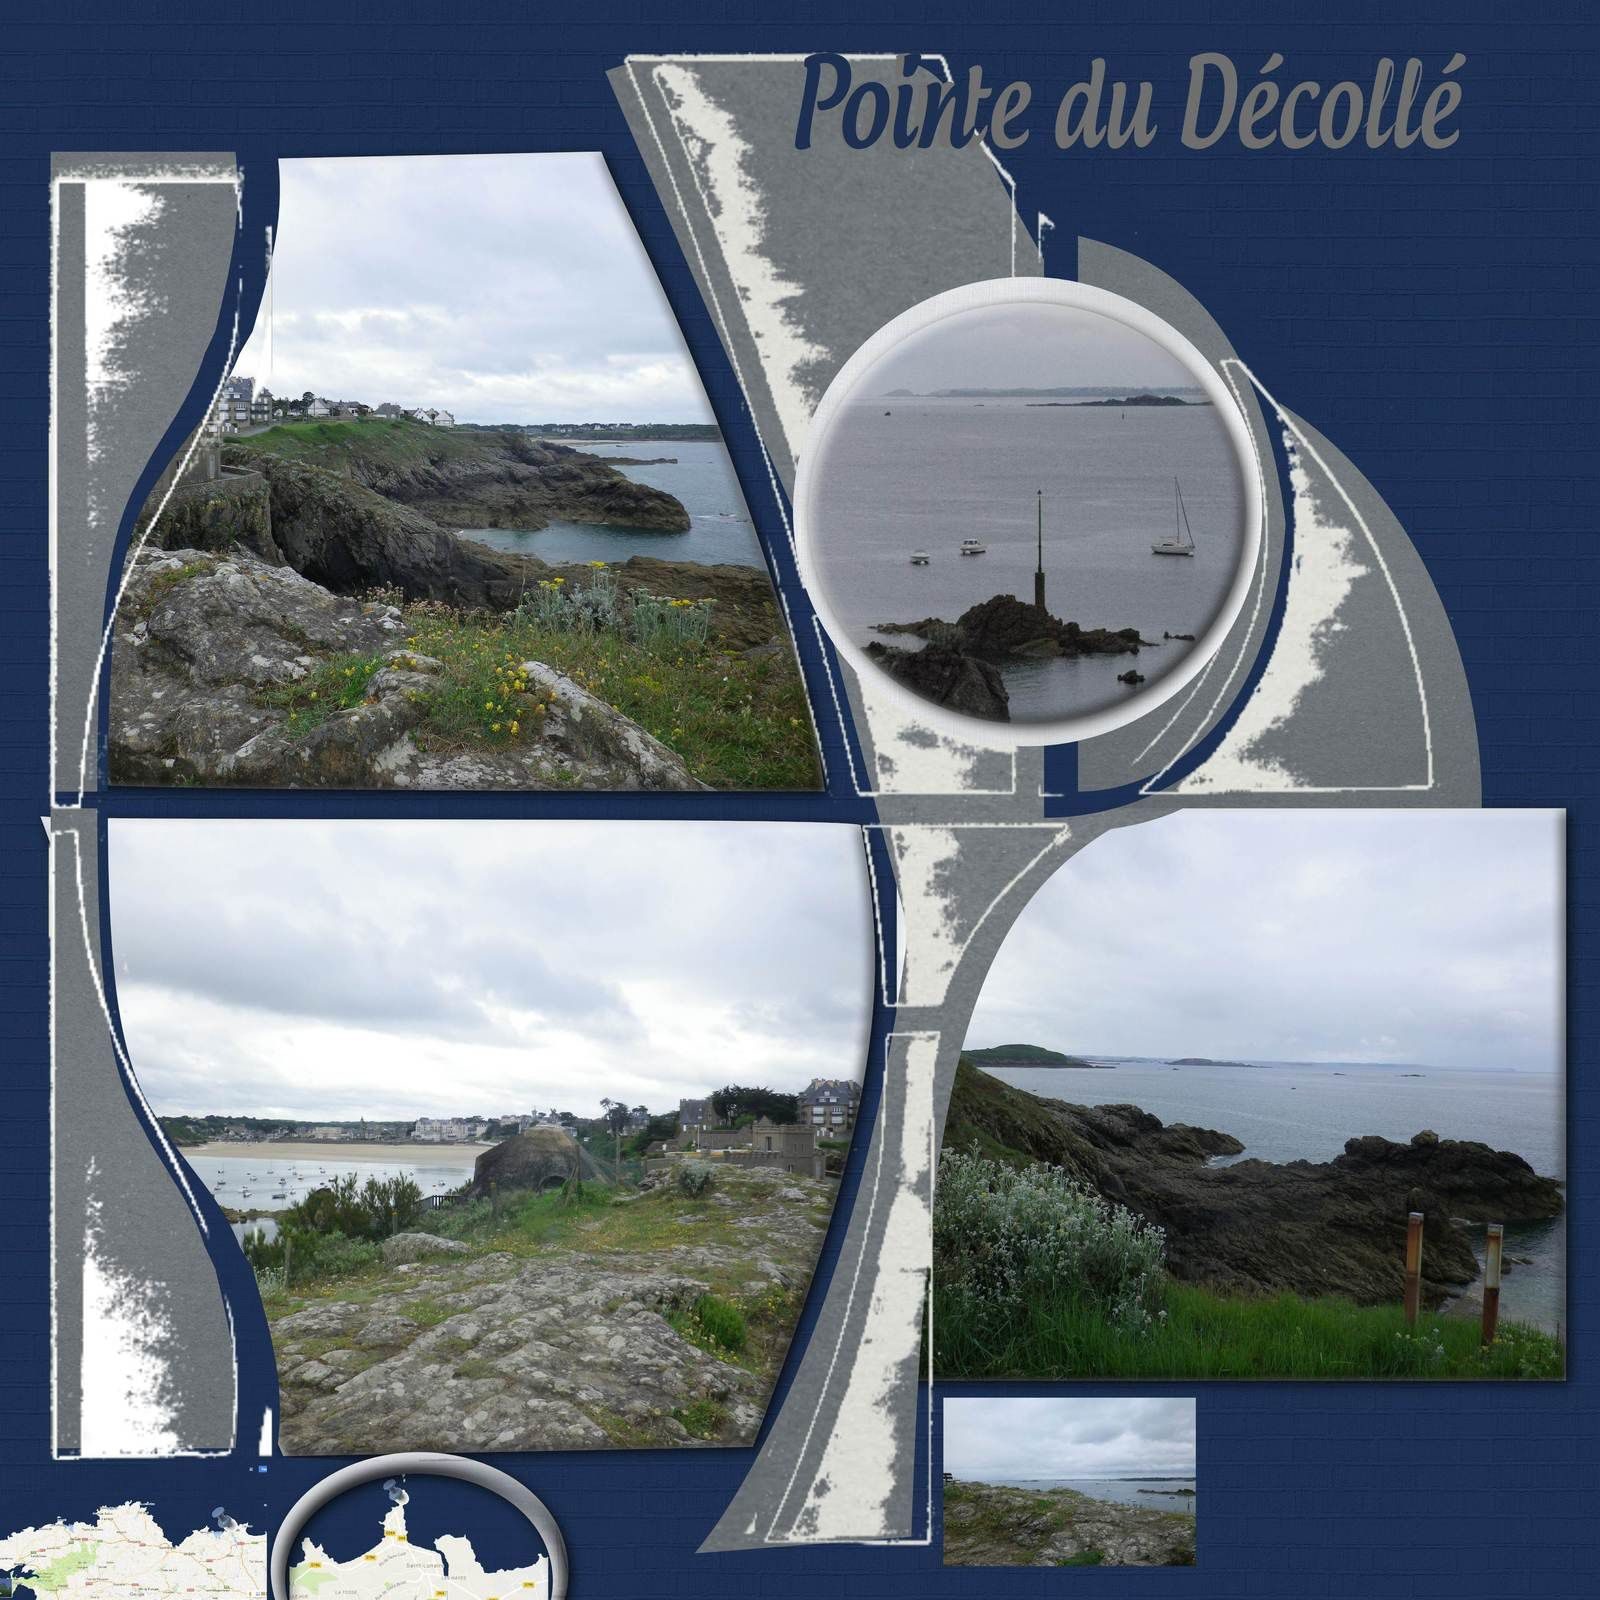 POINTE DU DECOLLE